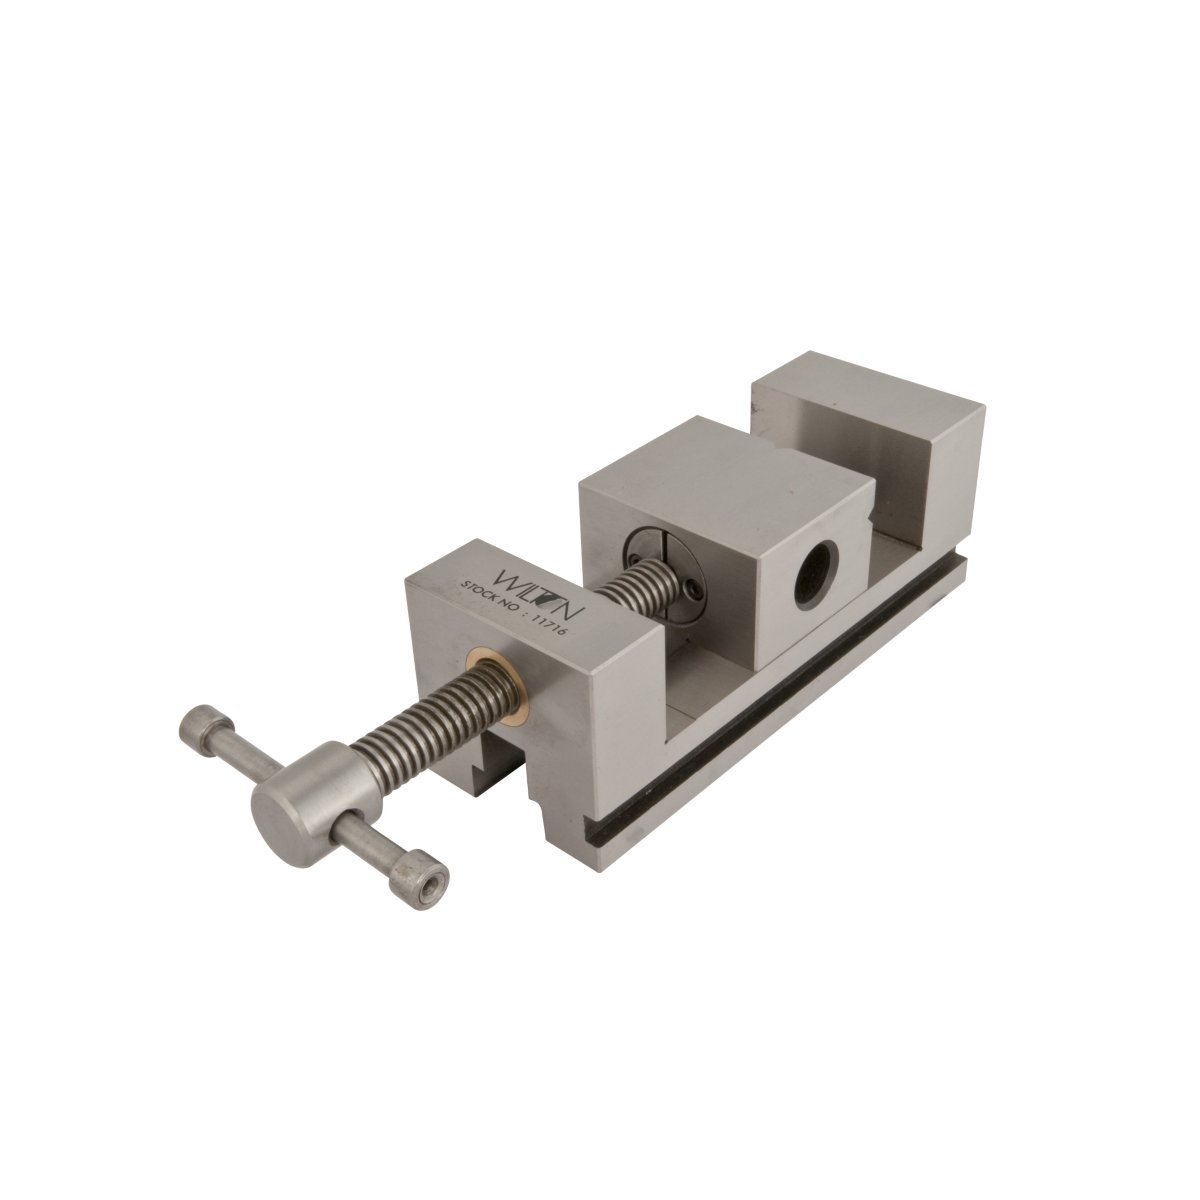 Wilton 11716 Super Precision Tool Makers Steel Vise 2-3/4-Inch Jaw Width, 1-9/16-Inch Depth